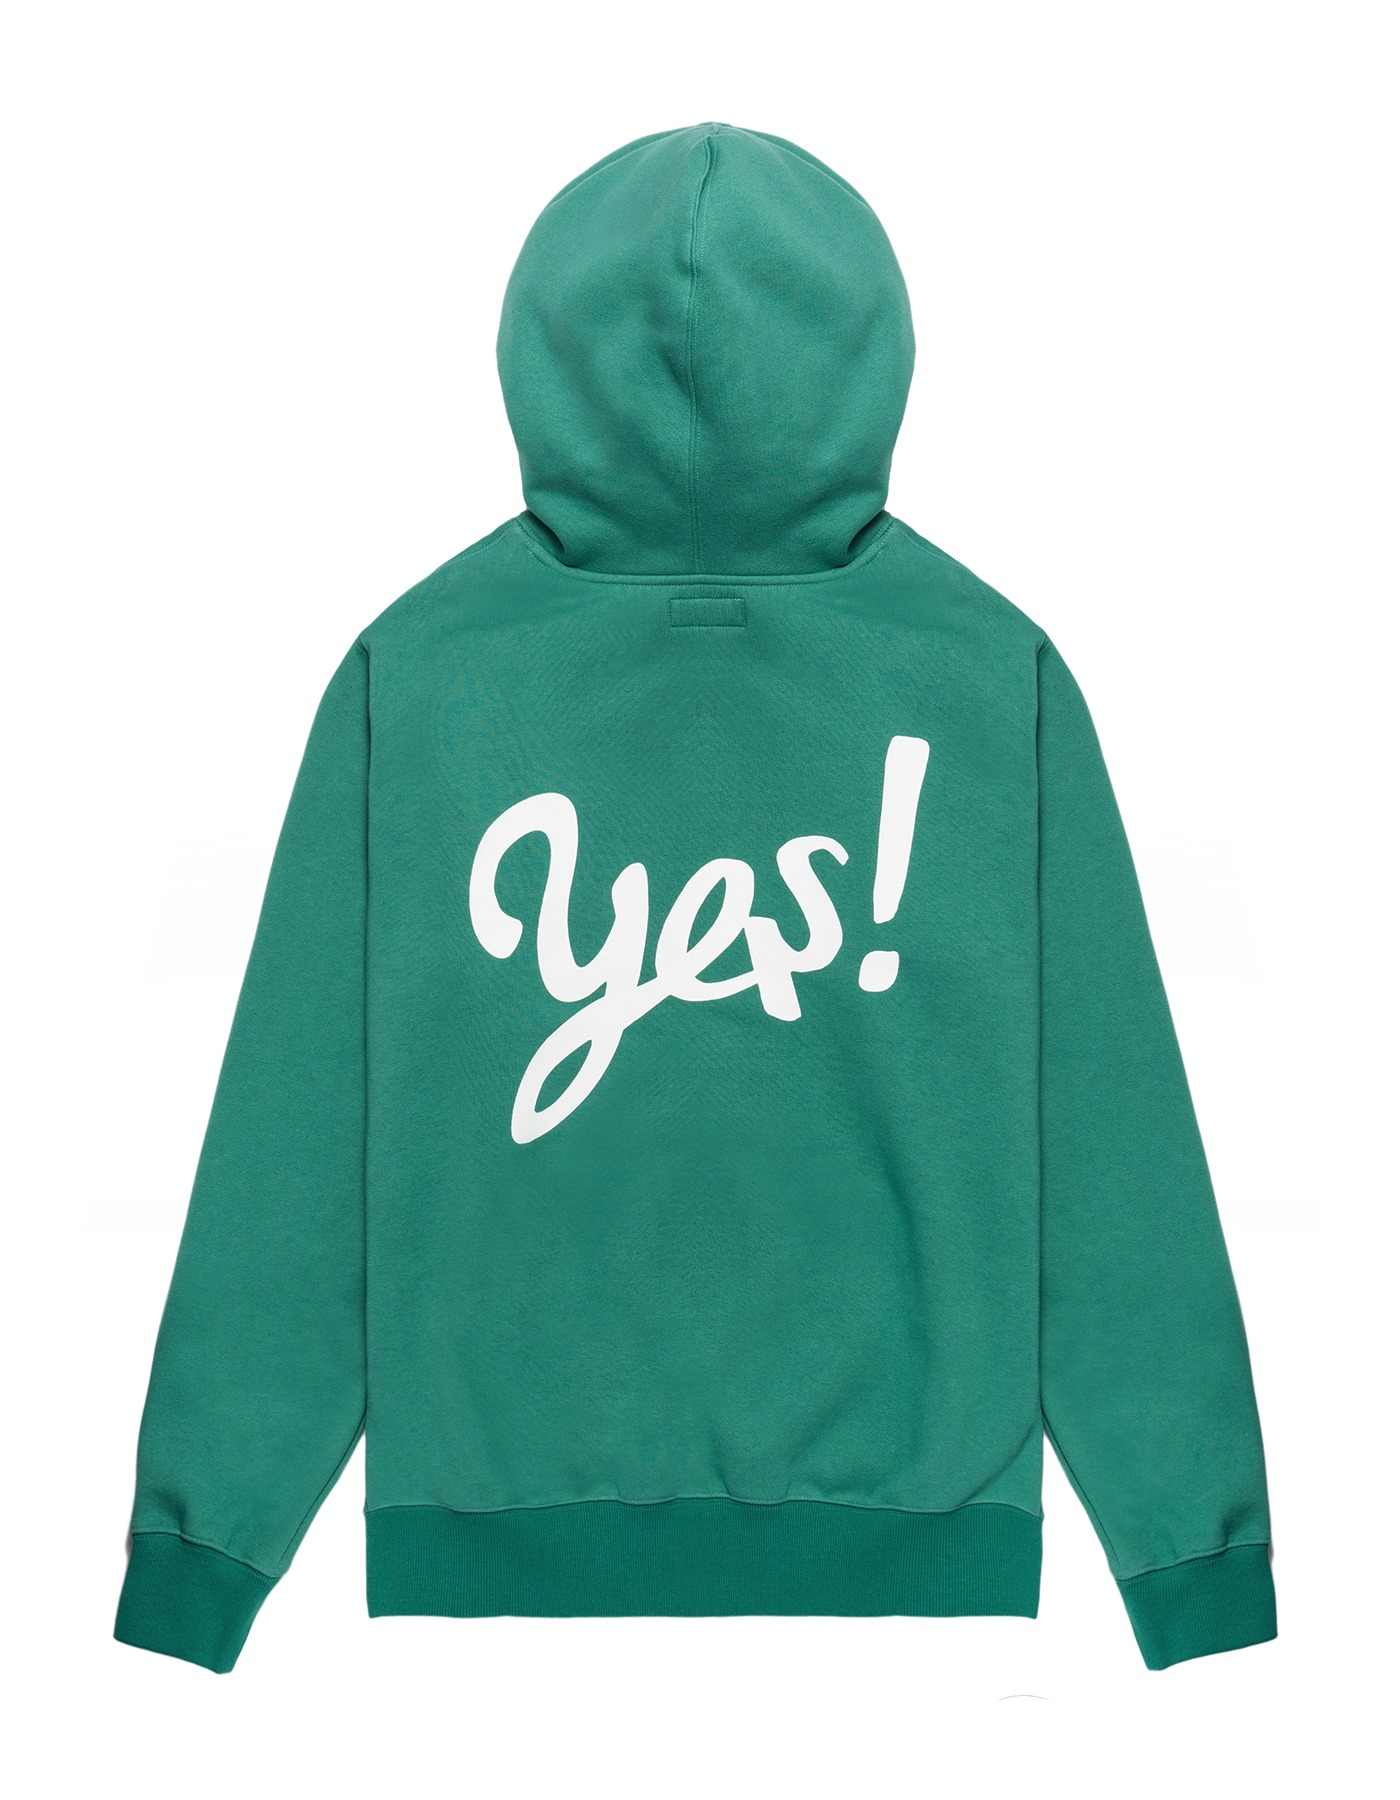 Yes! Hoodie - Green/White